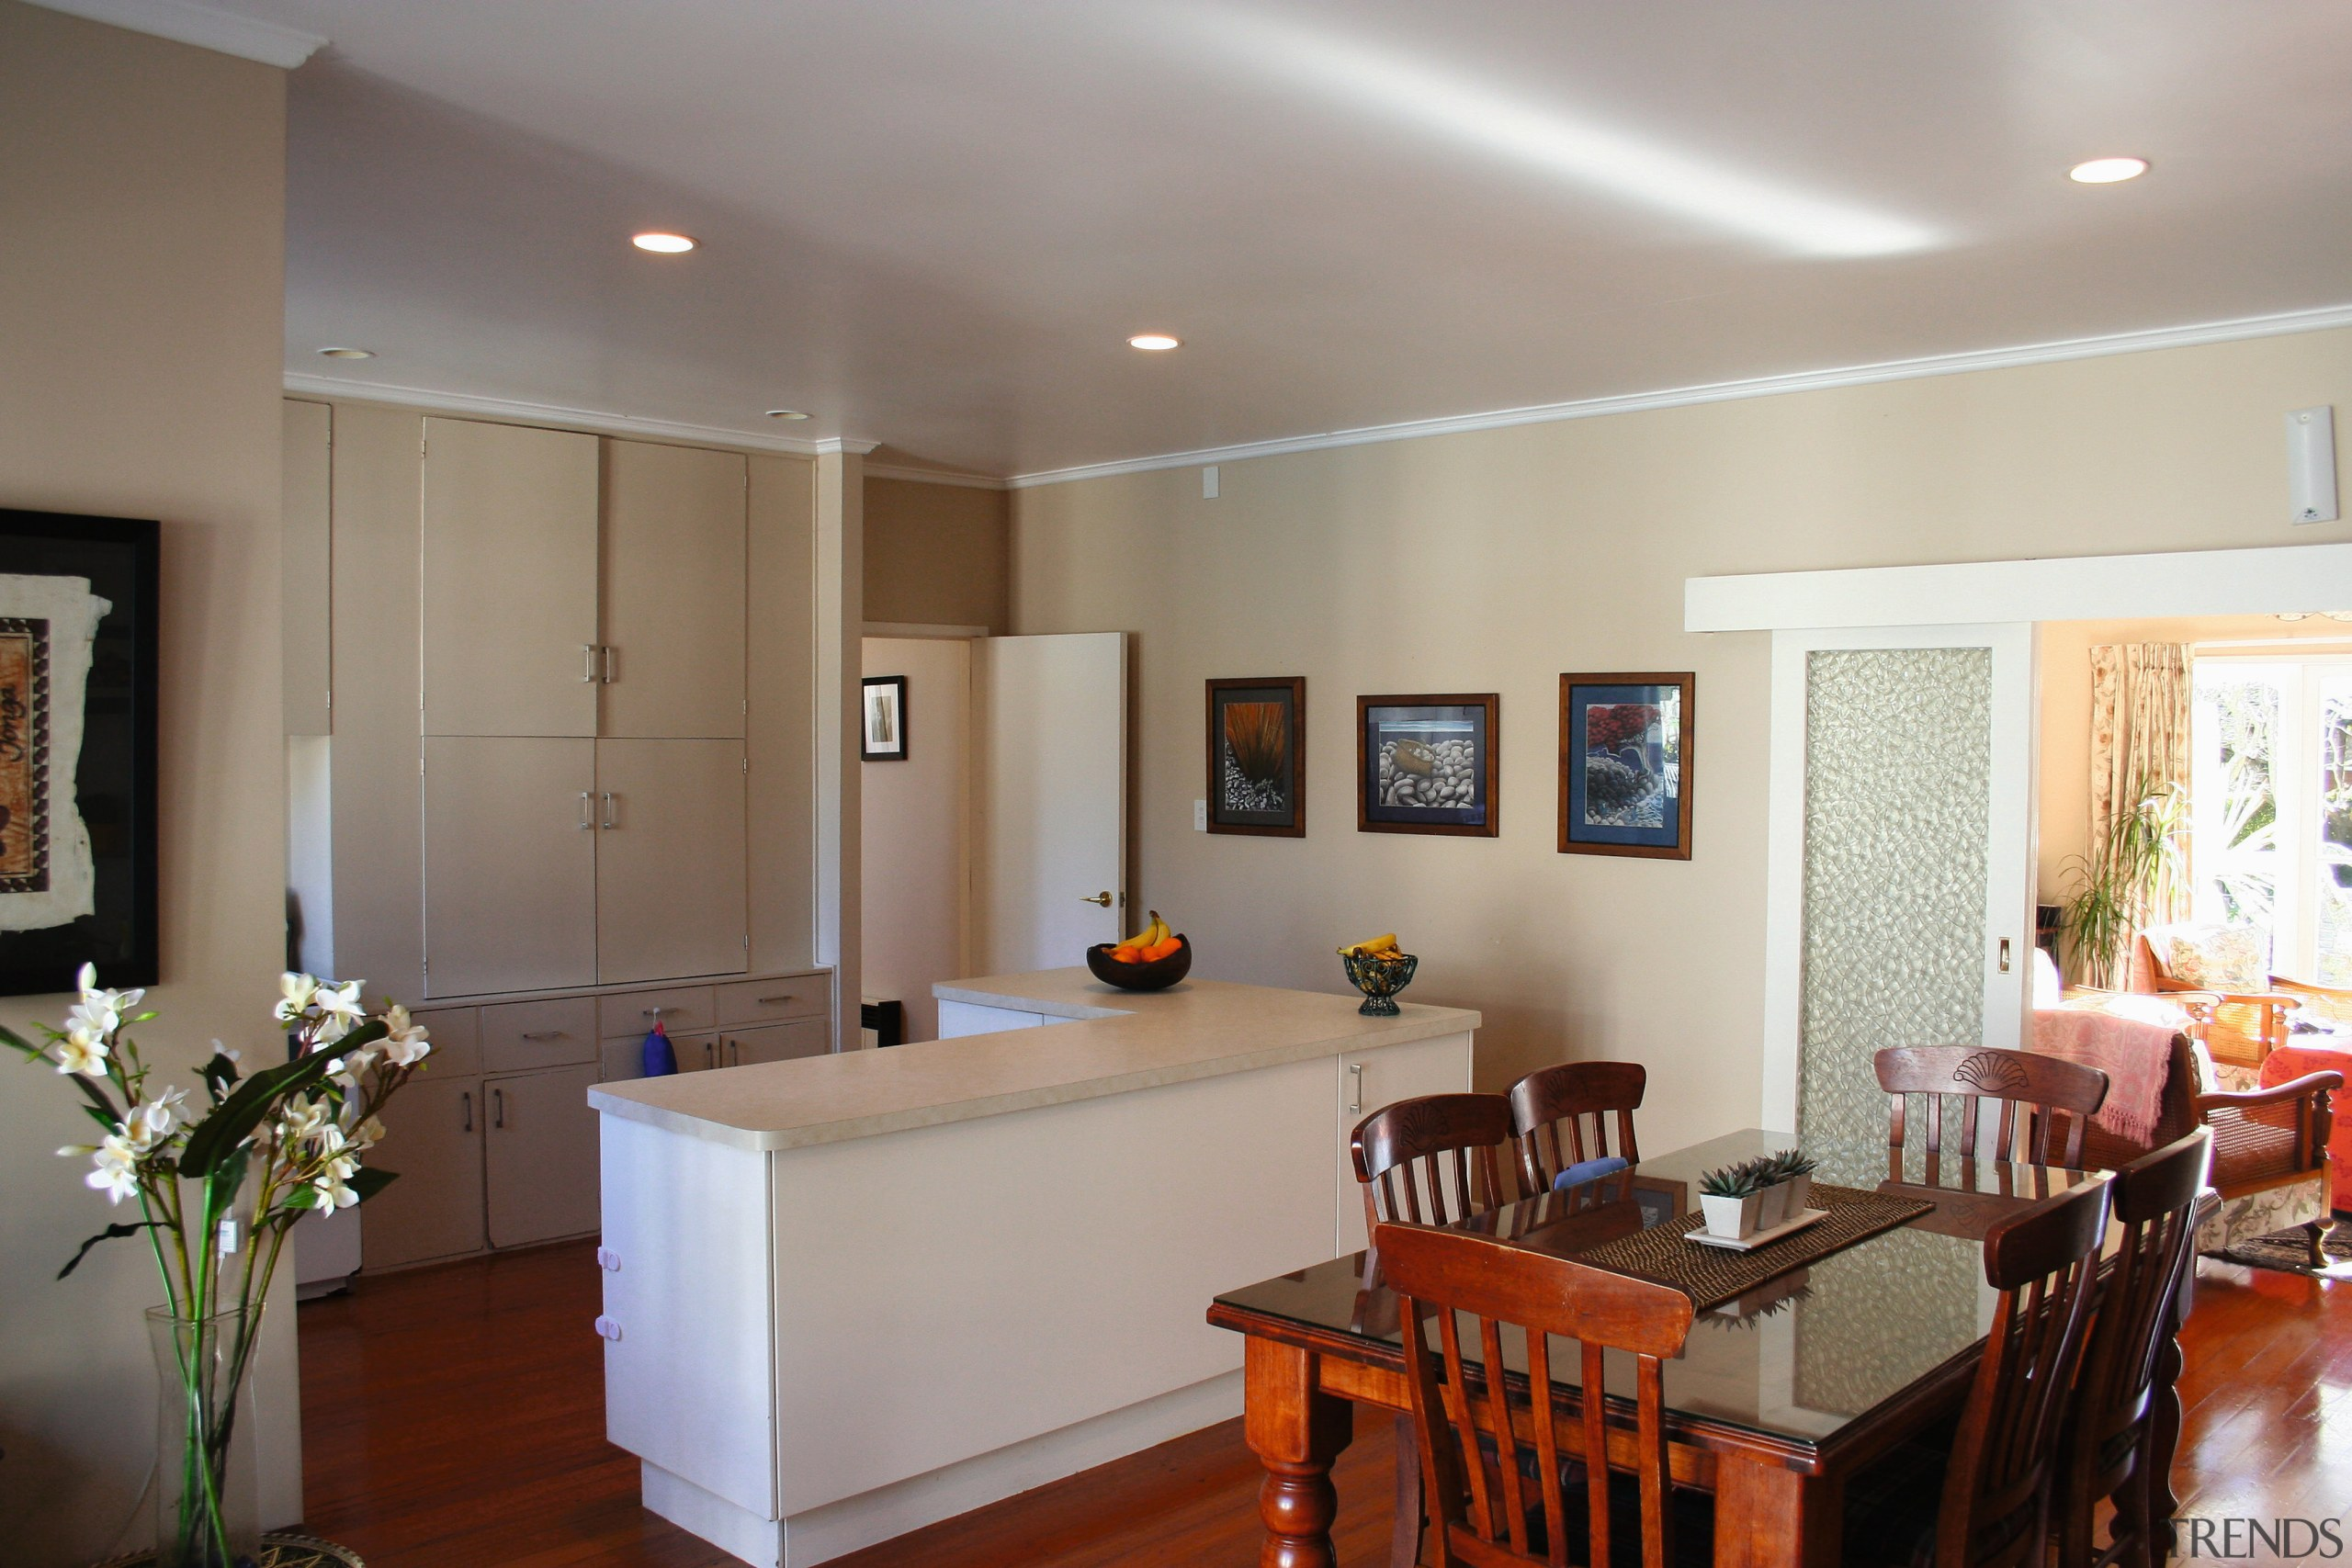 A view of the kitchen before it was apartment, ceiling, dining room, interior design, living room, property, real estate, room, gray